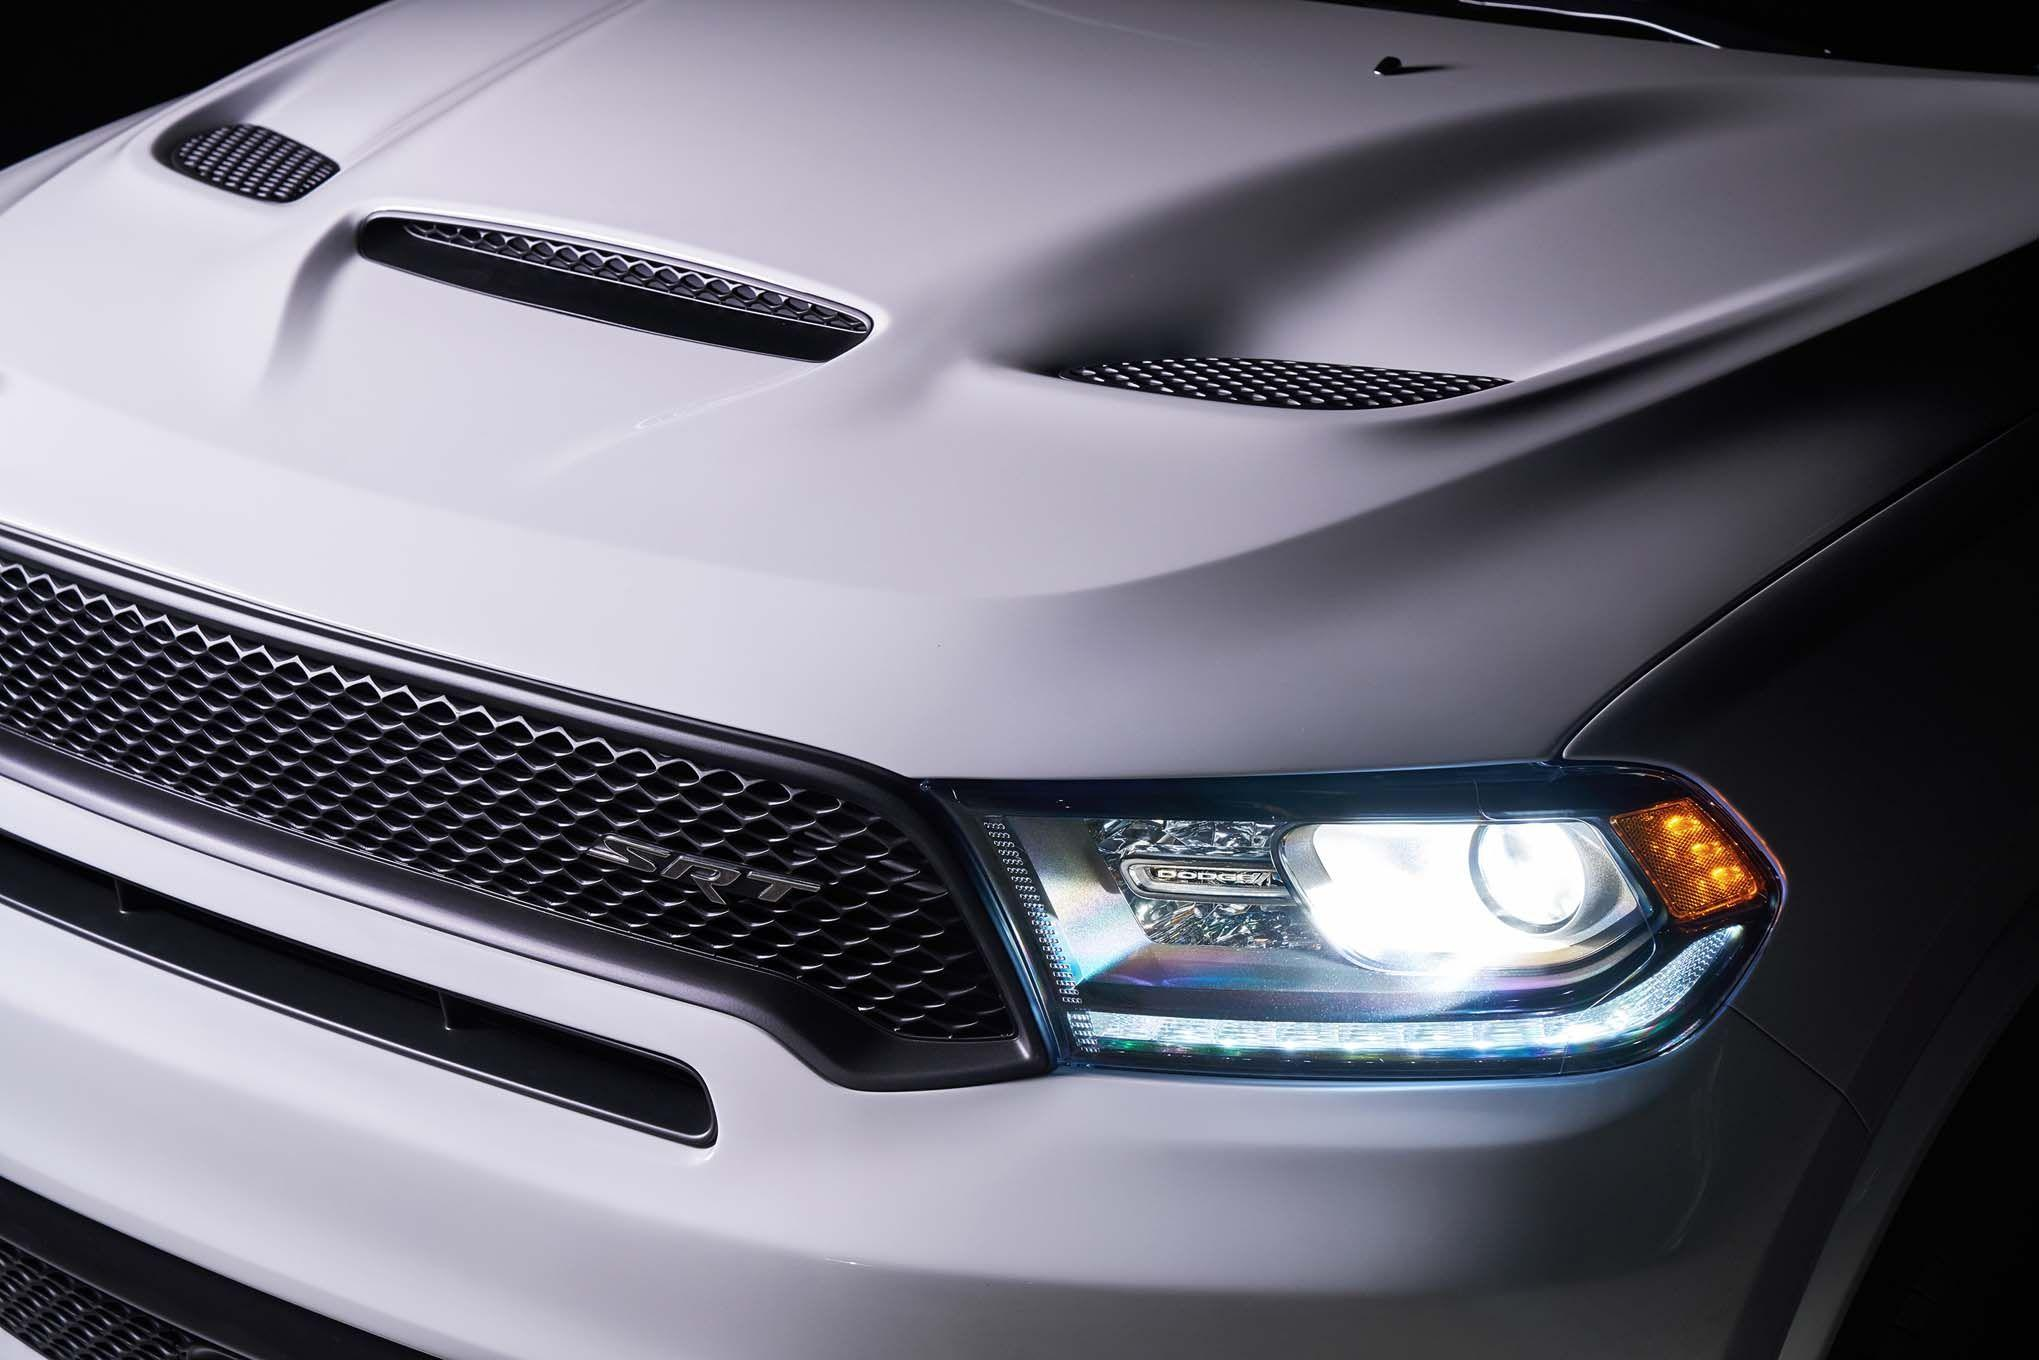 2018 Dodge Durango SRT First Look: The Nearly 500